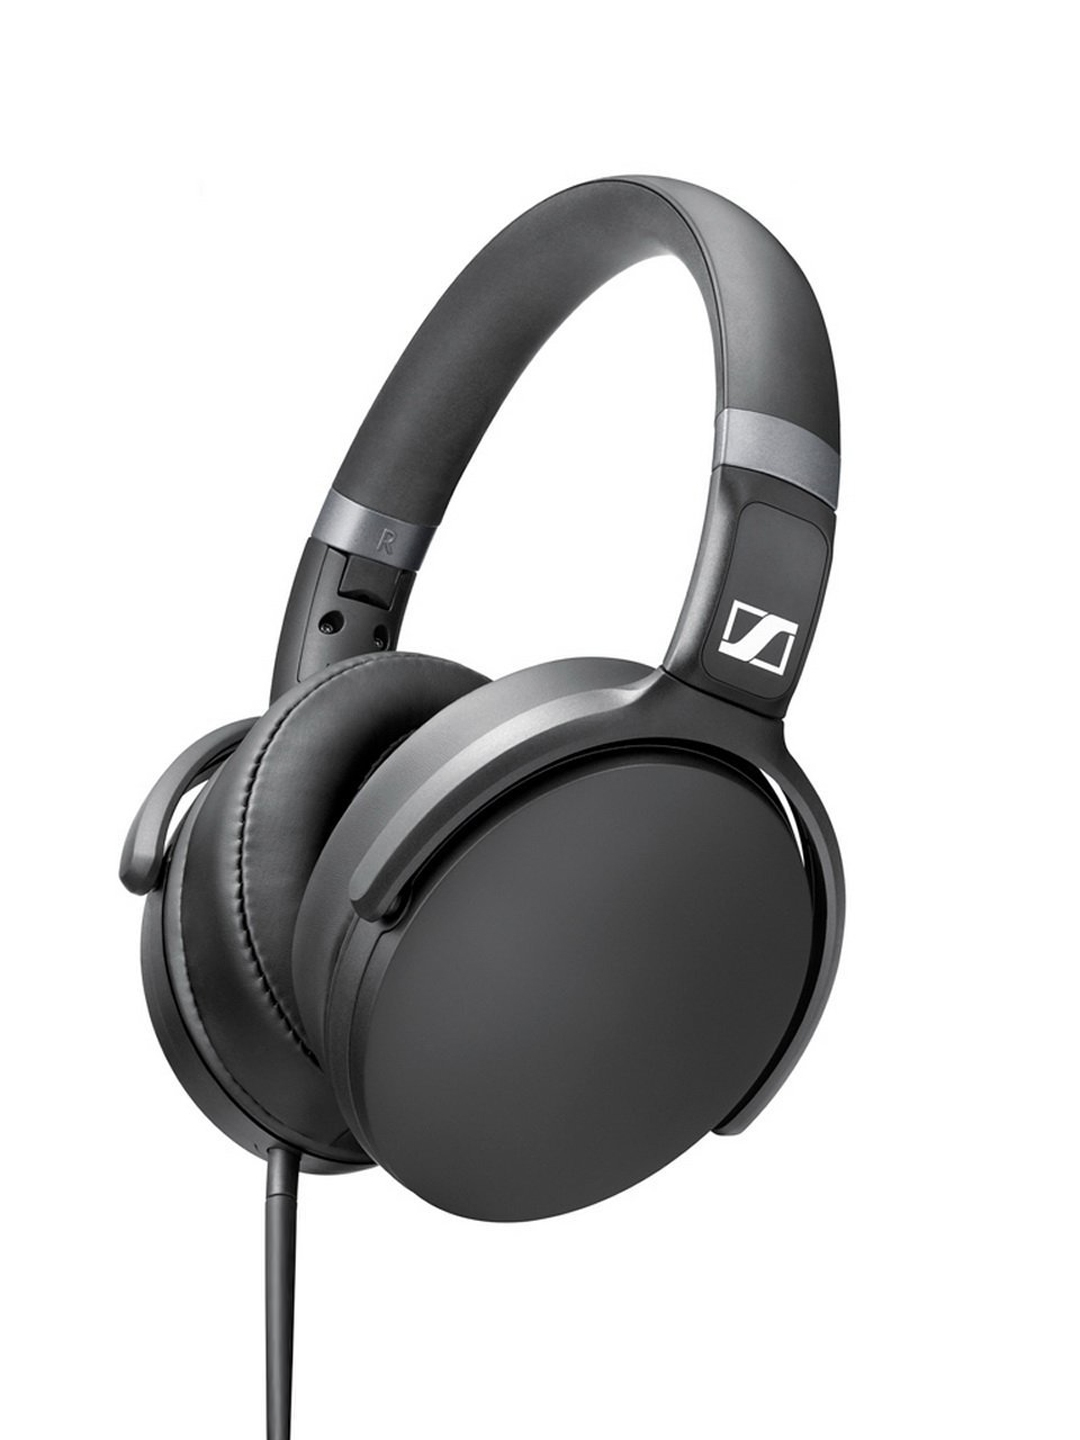 Sennheiser Black HD 4.30I Foldable Headphones with Mic Sennheiser Headphones